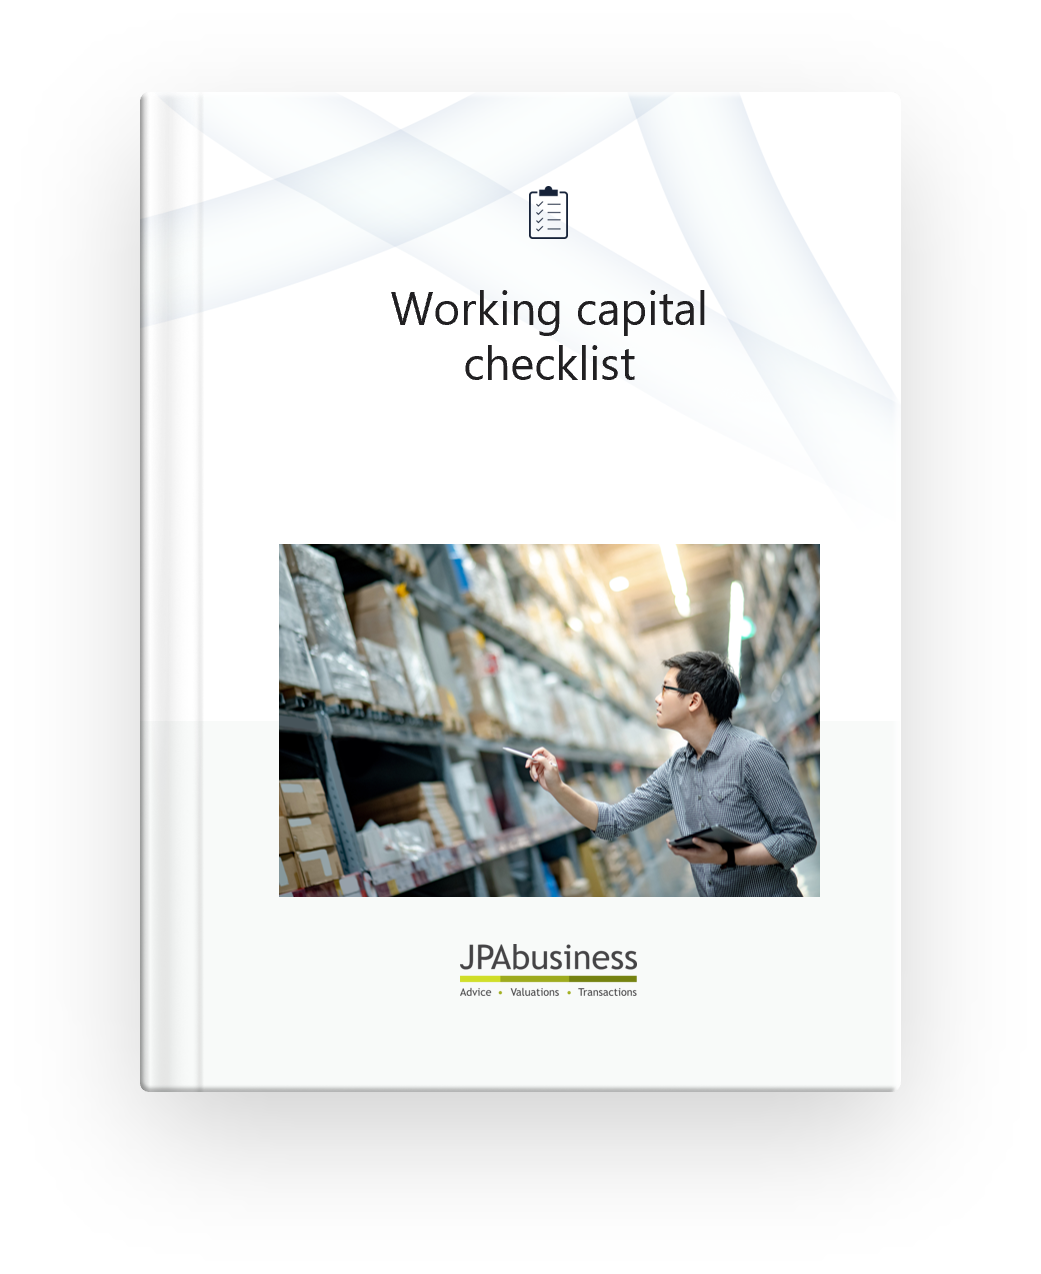 The_Working_Capital_Checklist